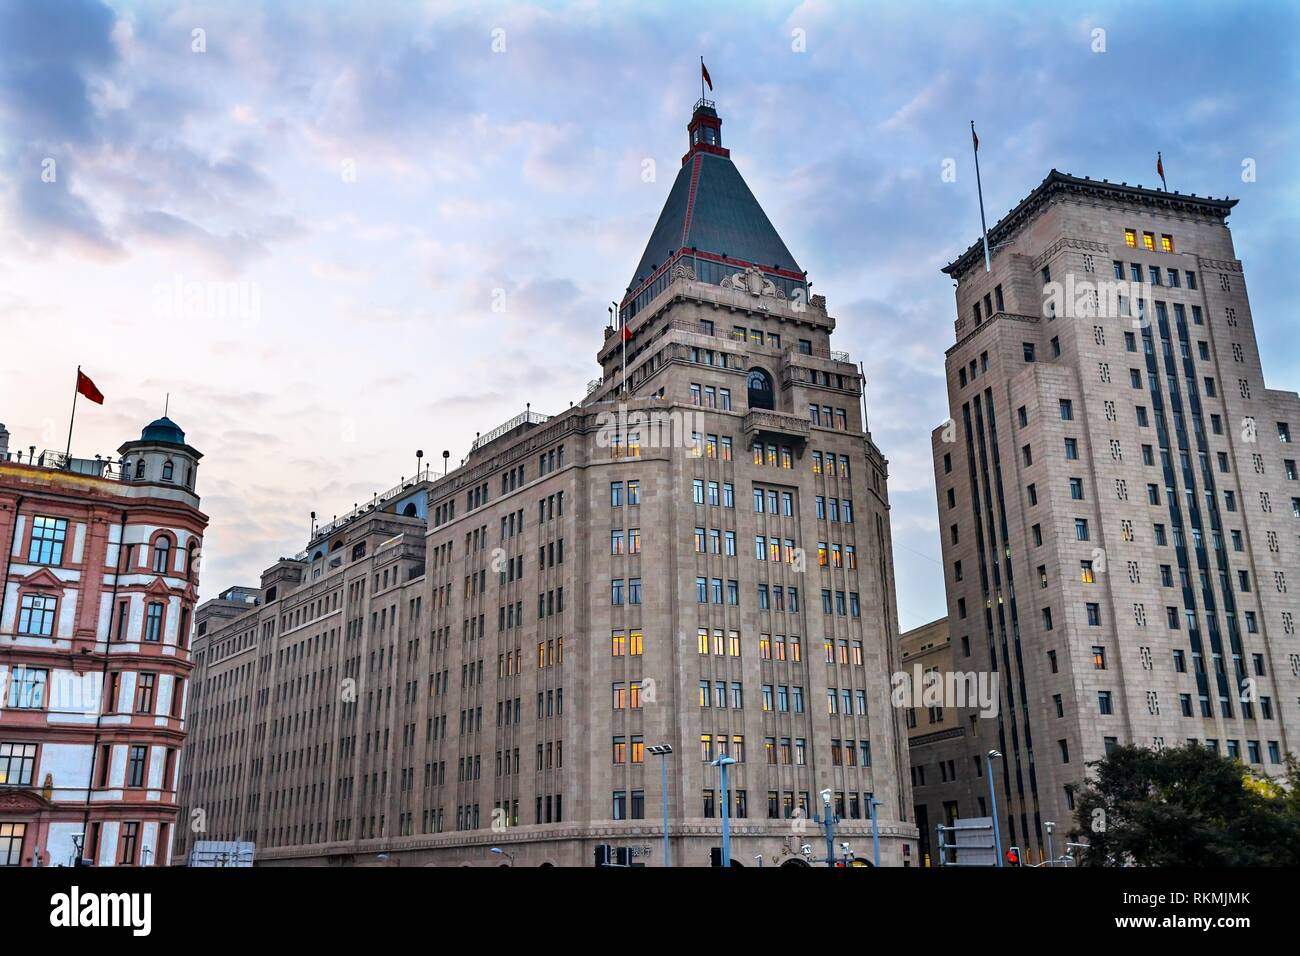 Peace Hotel Bund Buildings Evening Shanghai China One of the most famous places in Shanghai and China. Oldest Hotel in Shanghai, was famous hotel in - Stock Image